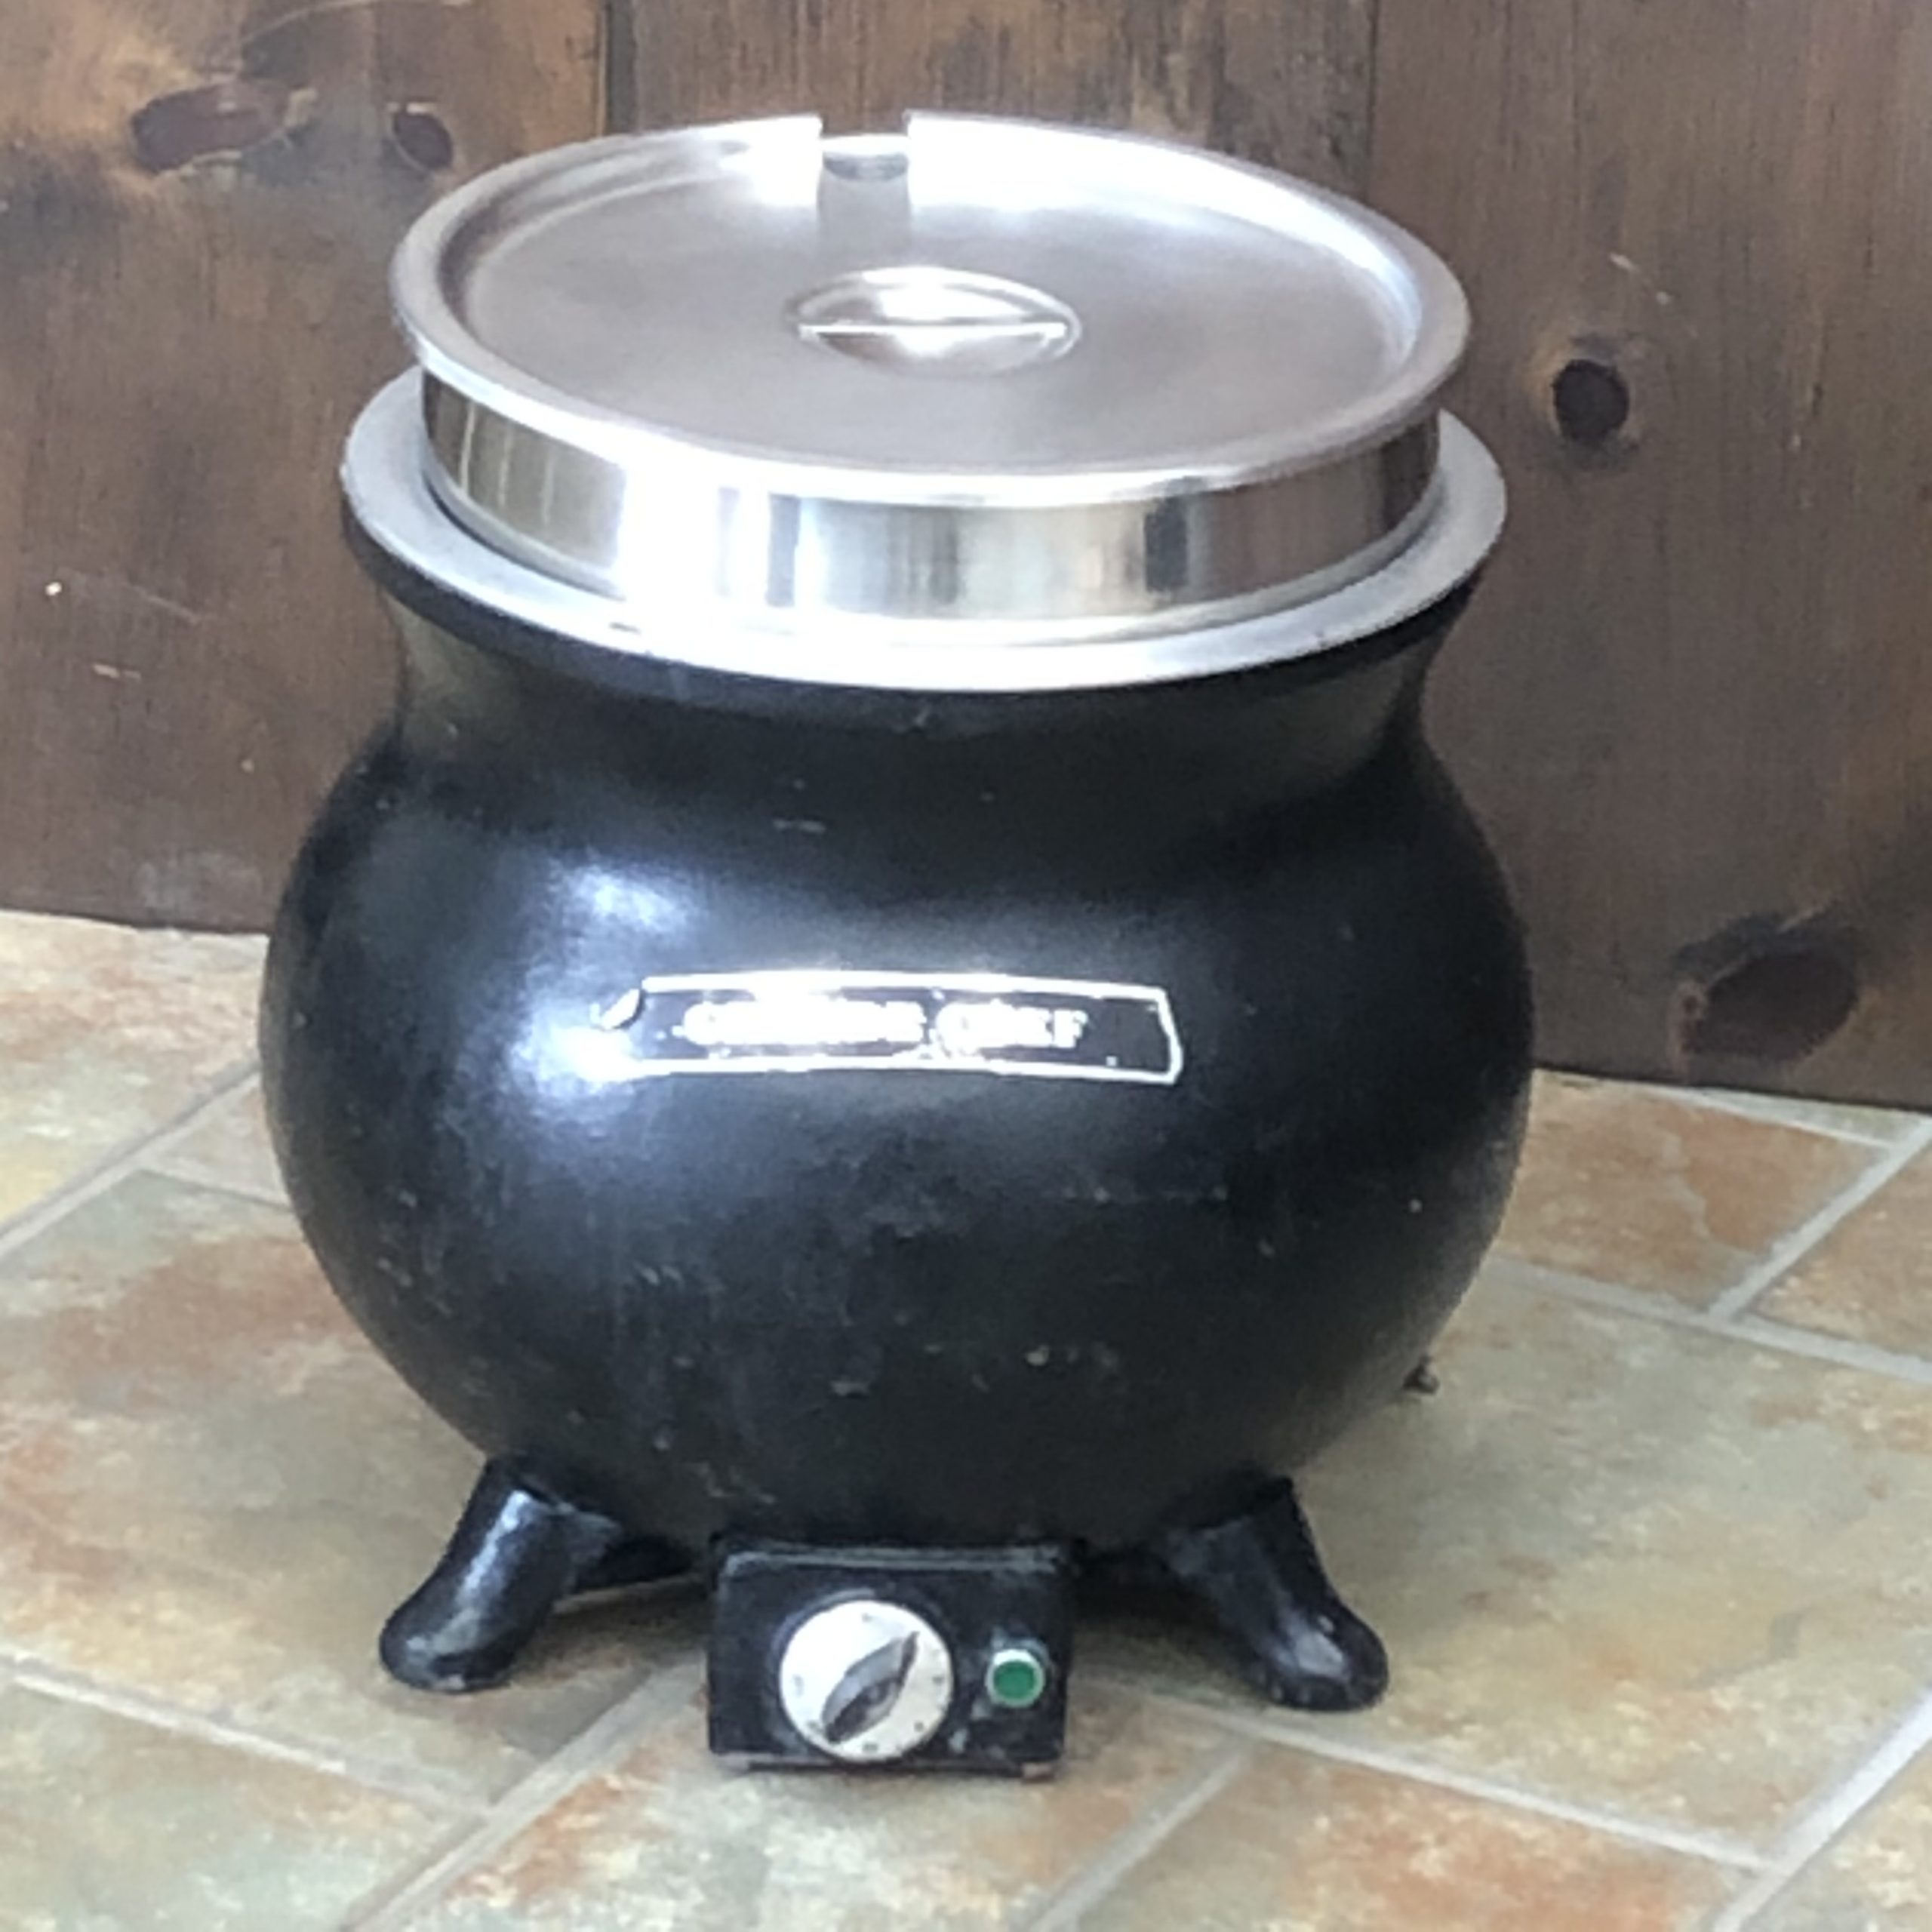 Soup Warmer Image